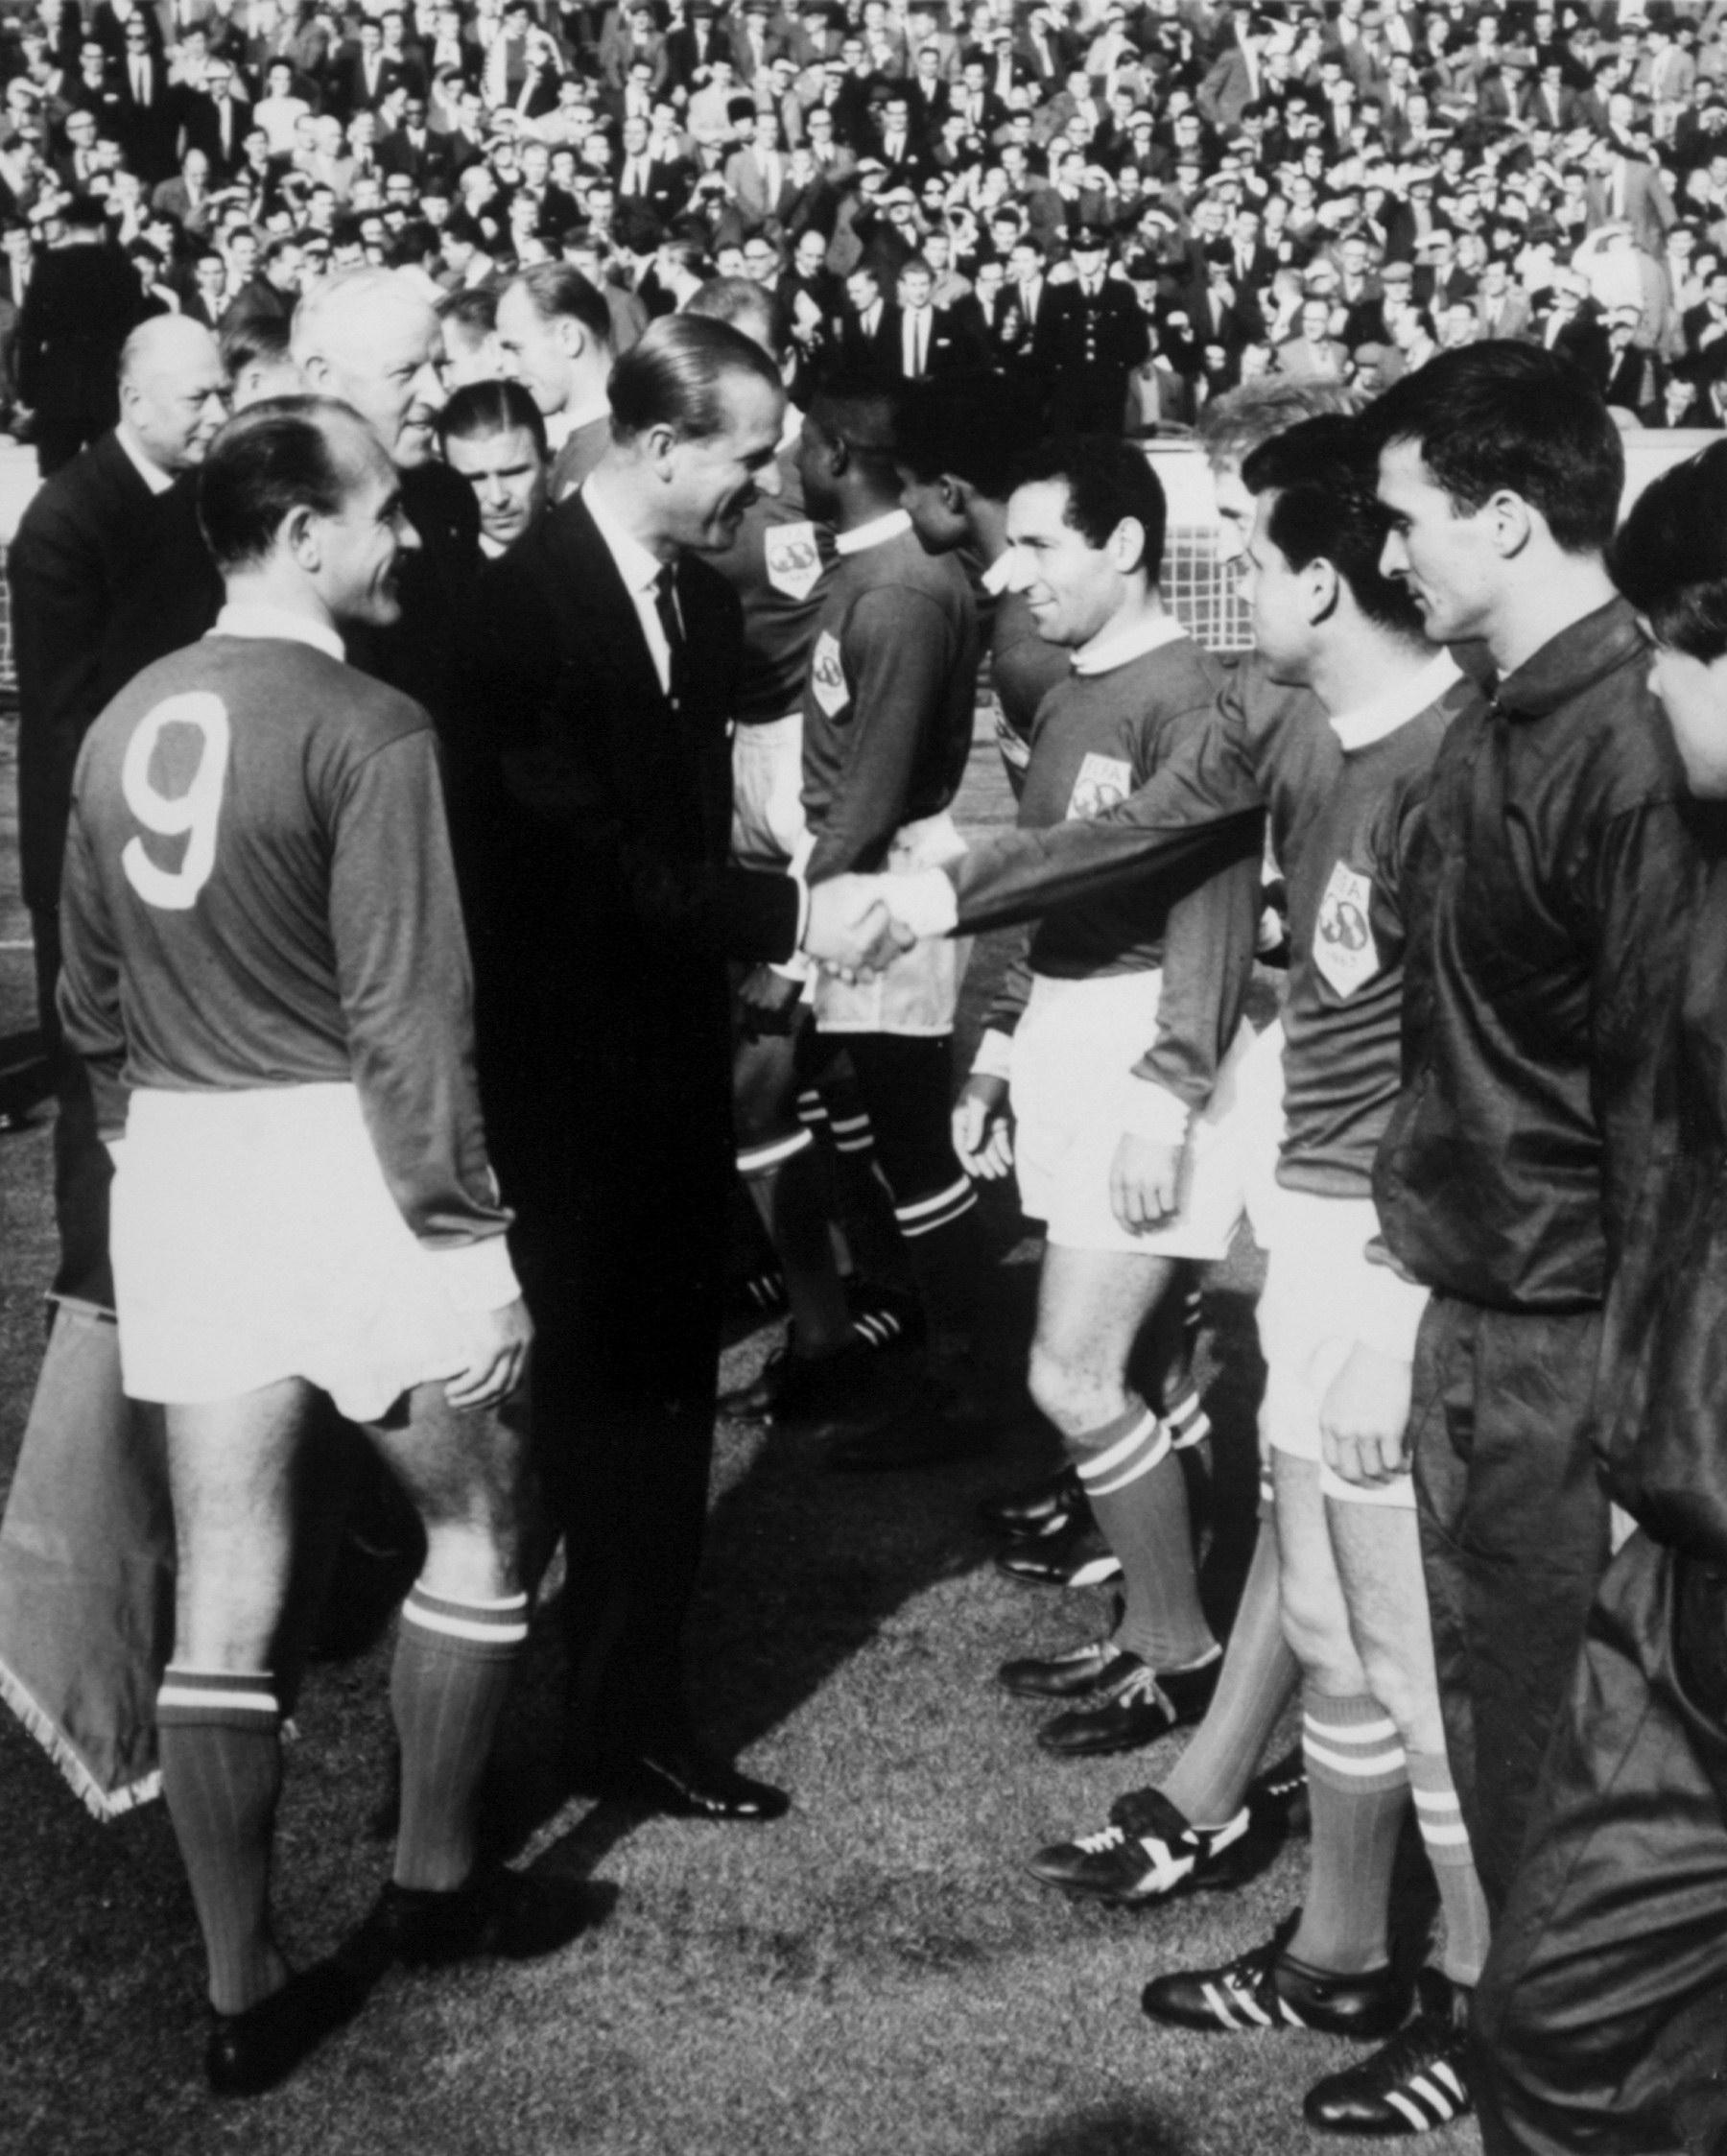 Soccer - FA 100th Anniversary Match - England v Rest of the World Rest of the World captain Alfredo di Stefano (l) looks on as HRH The Duke of Edinburgh shakes hands with Rest of the World's Denis Law (third r). To Law's right stand his teammates Francisco Gento, Eusebio and Djalma Santos Date: 23/10/1963